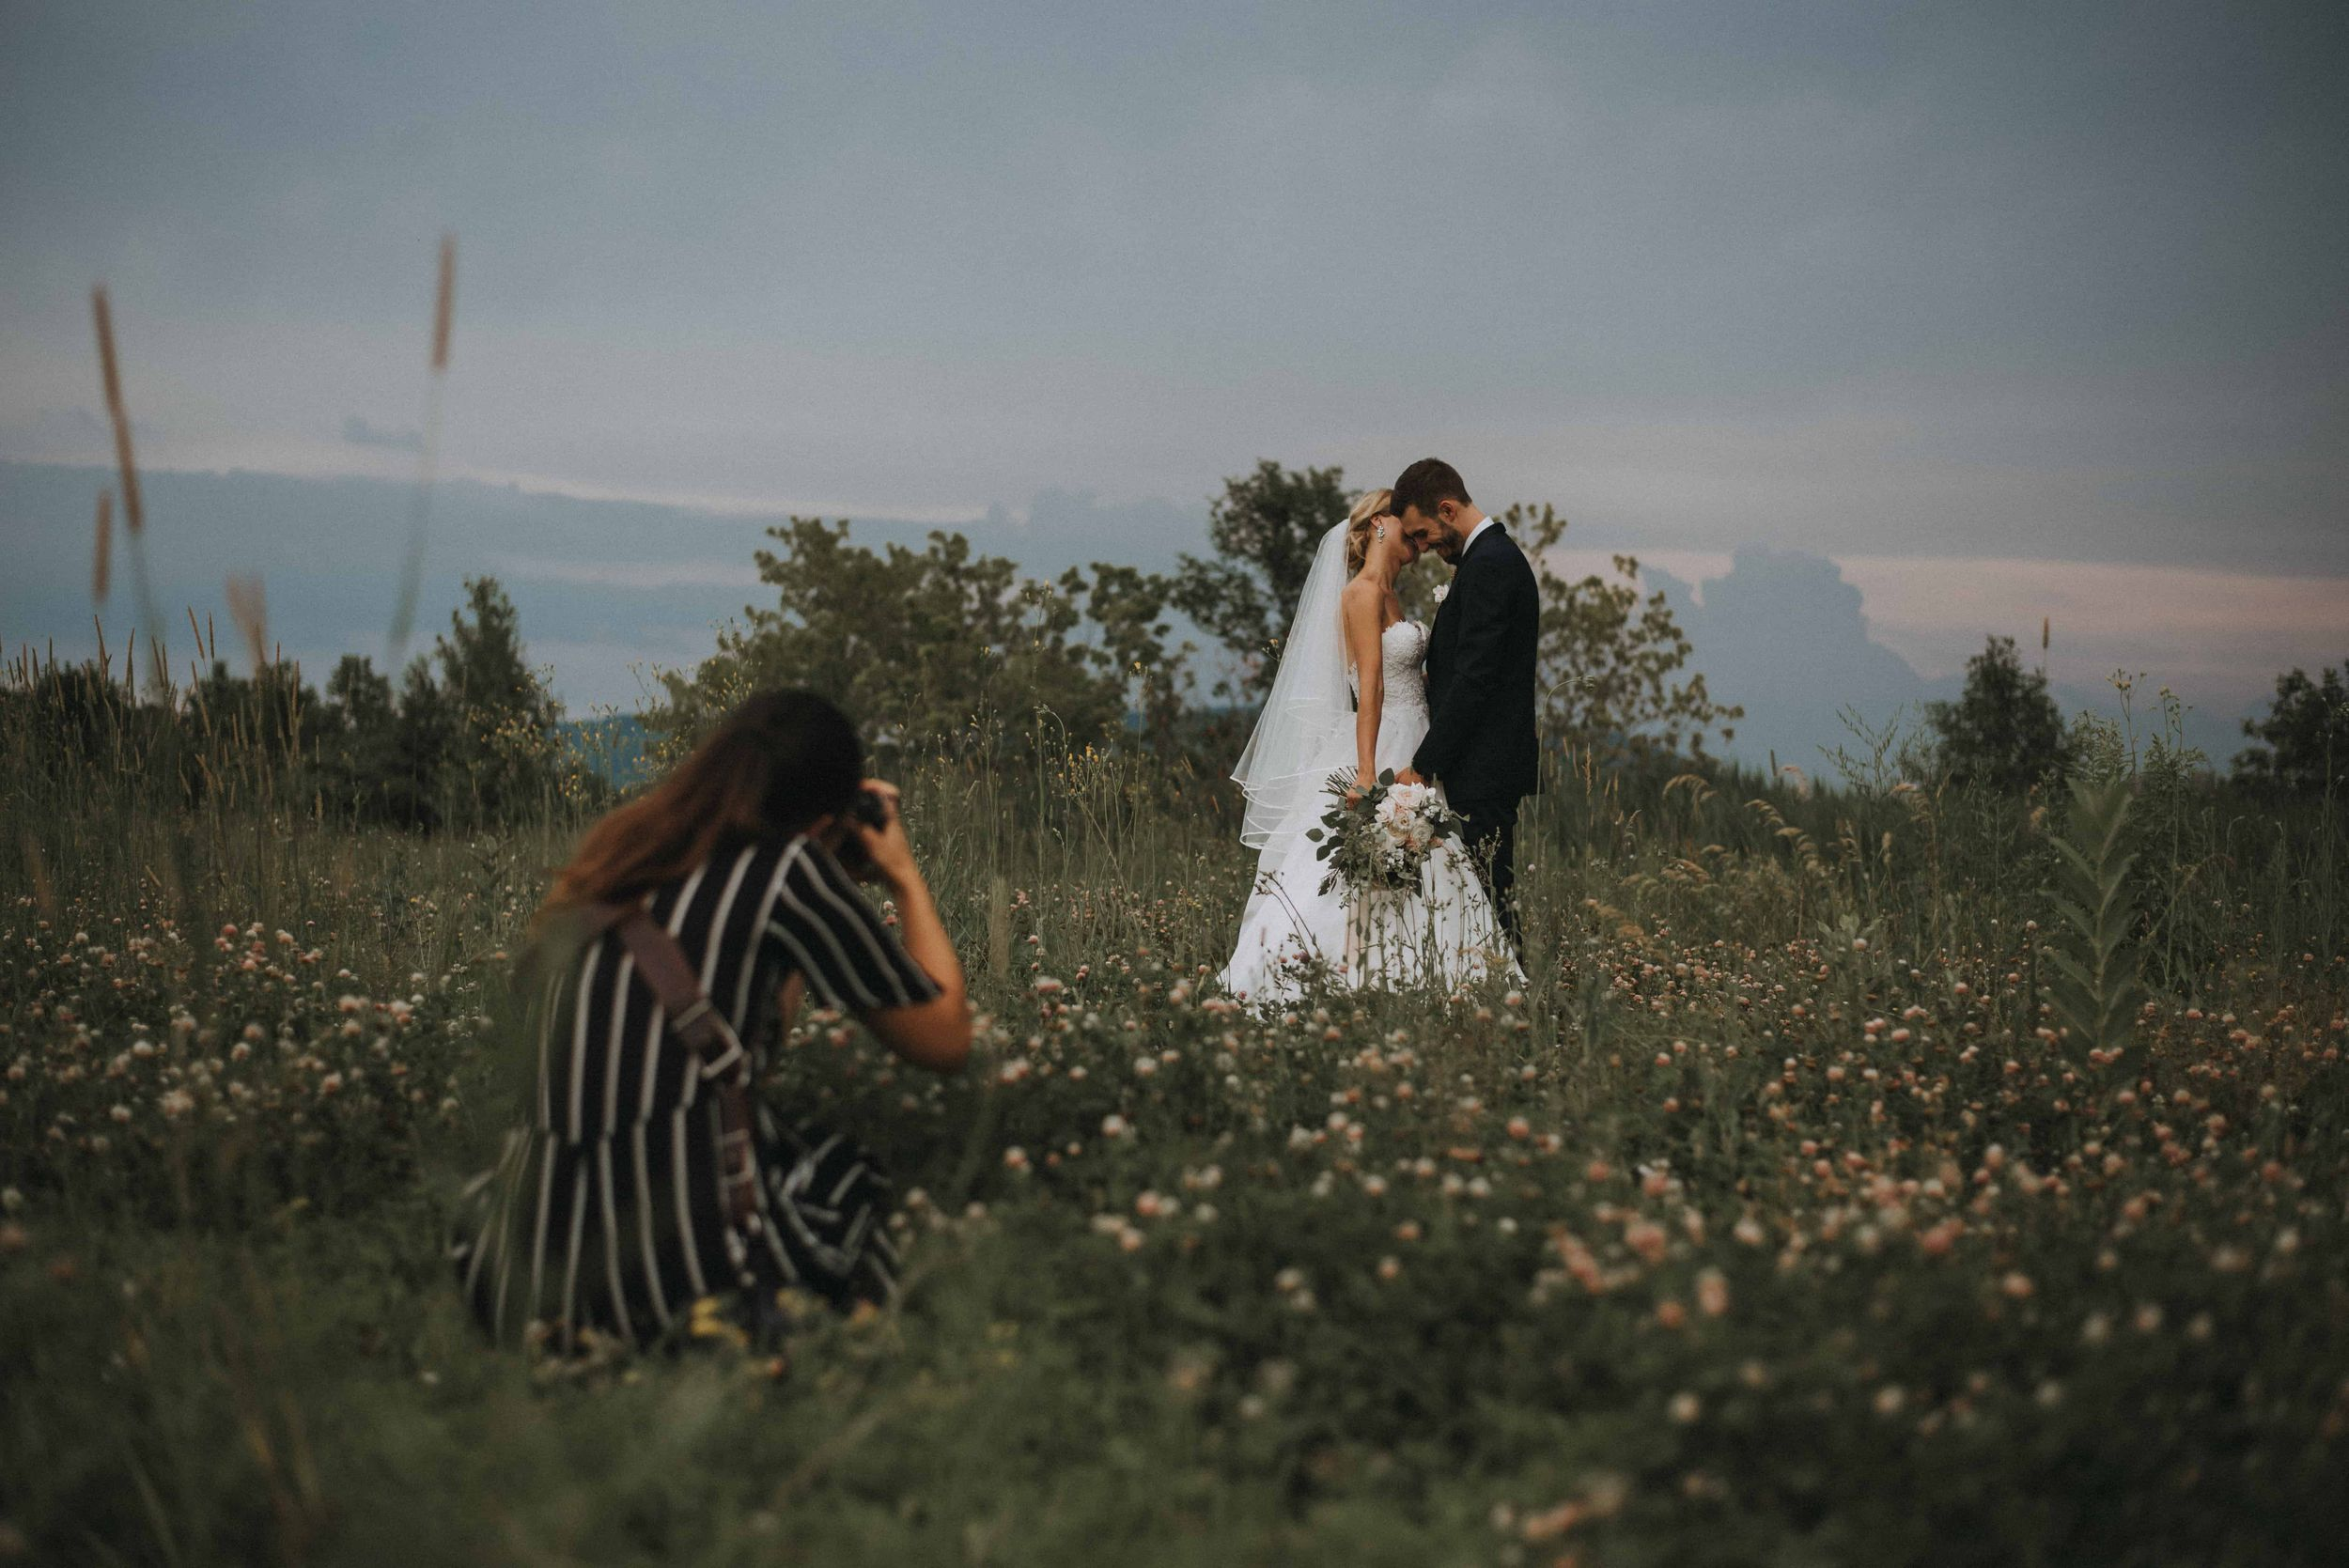 Raphaëlle Granger laying down in a flower field to get the perfect angle for this wedding session